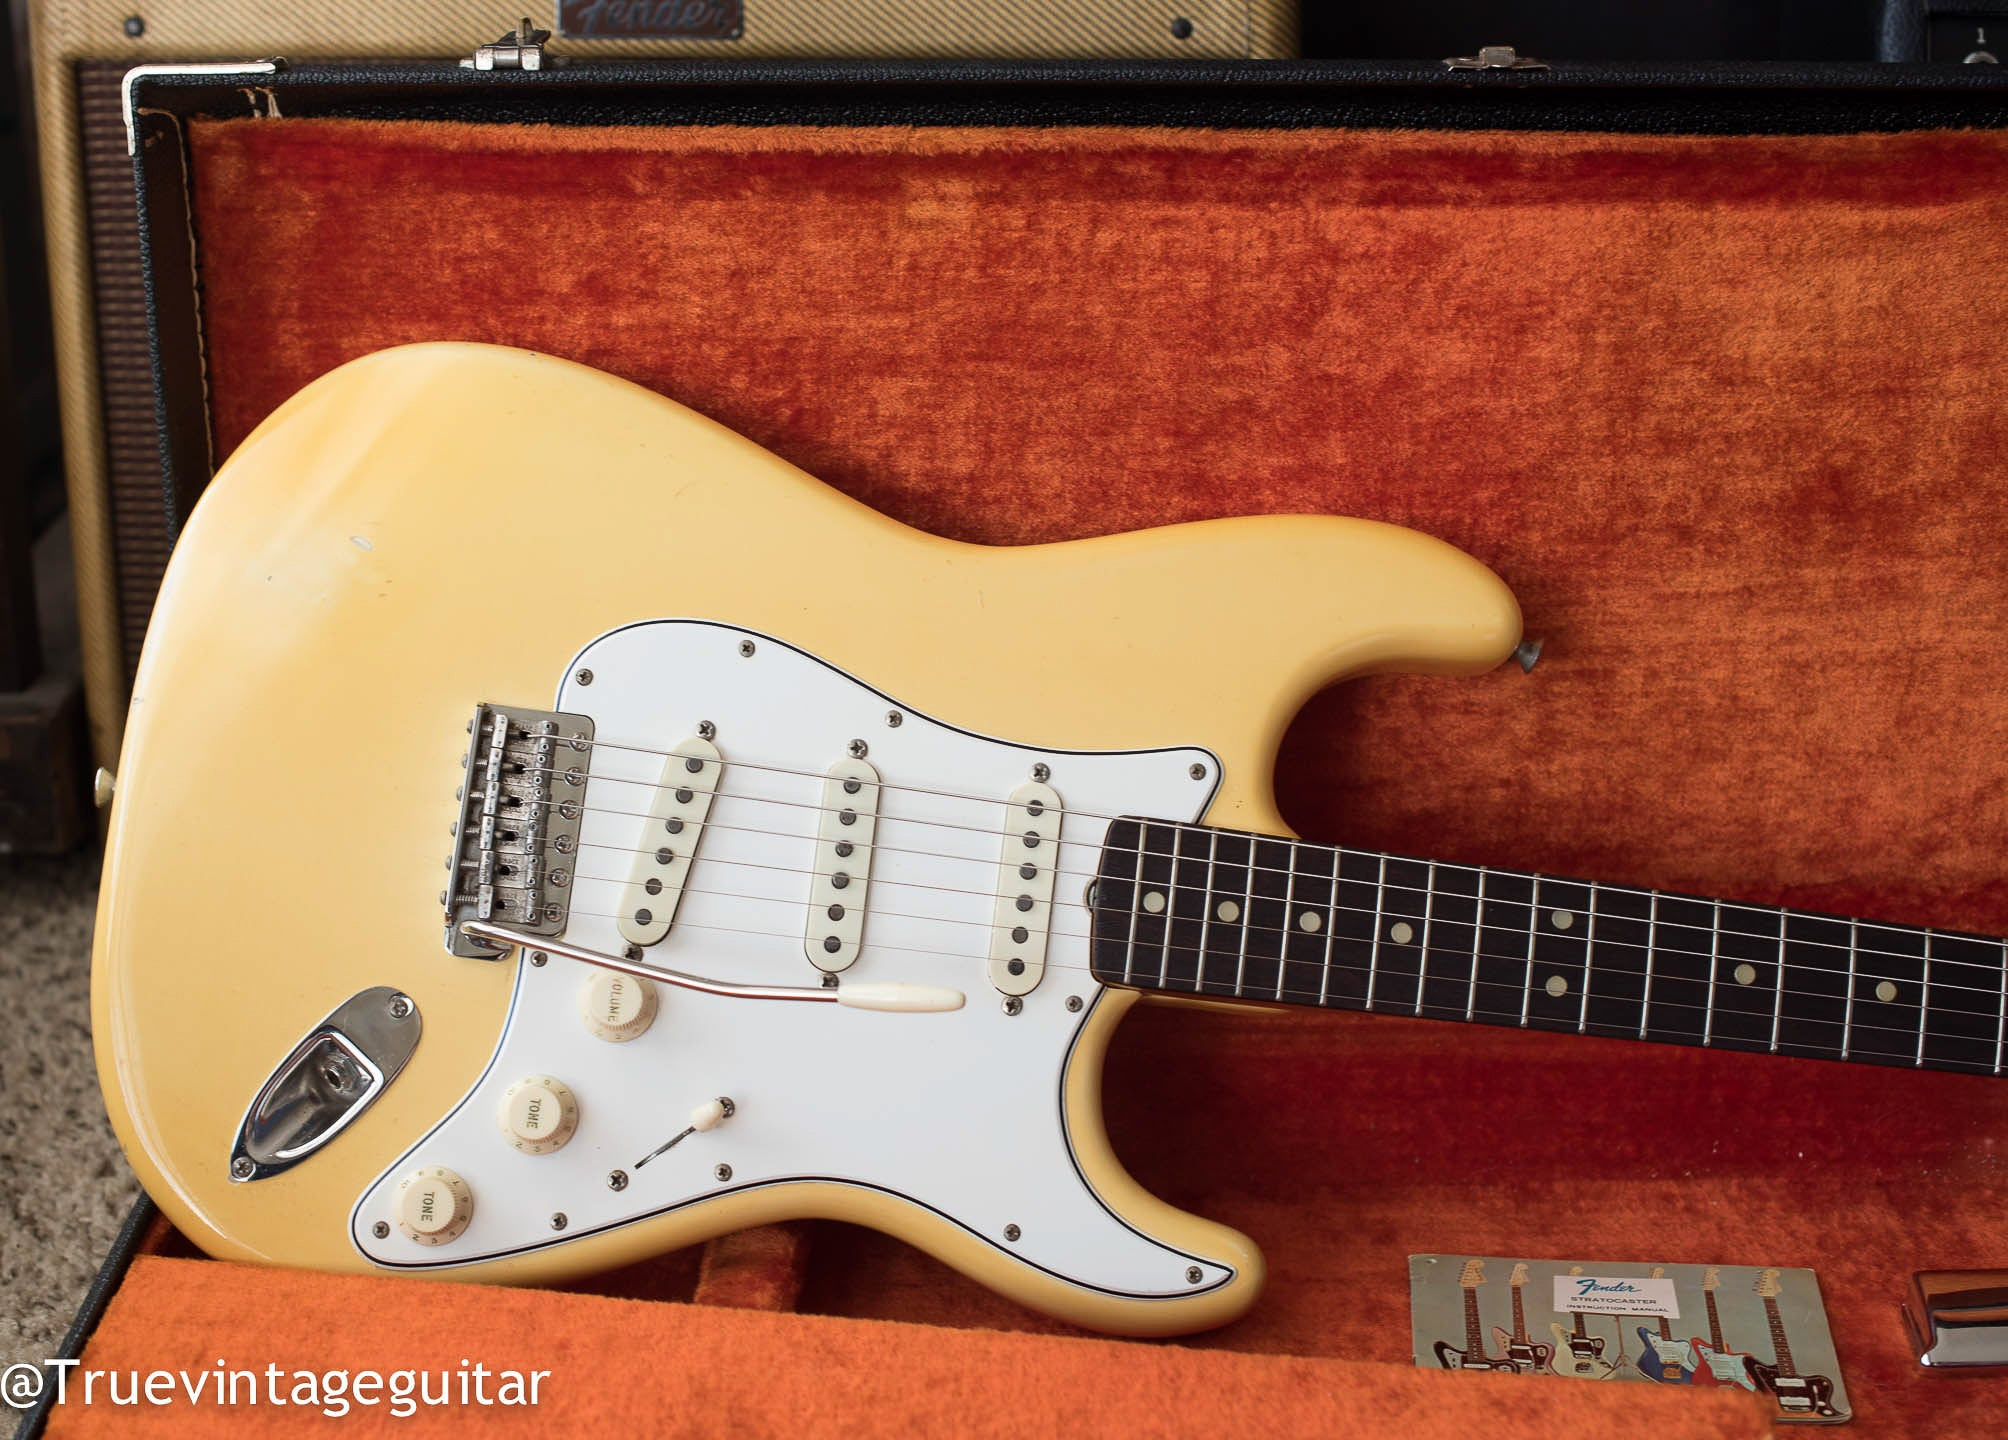 1965 Fender Stratocaster Olympic White cream guitar